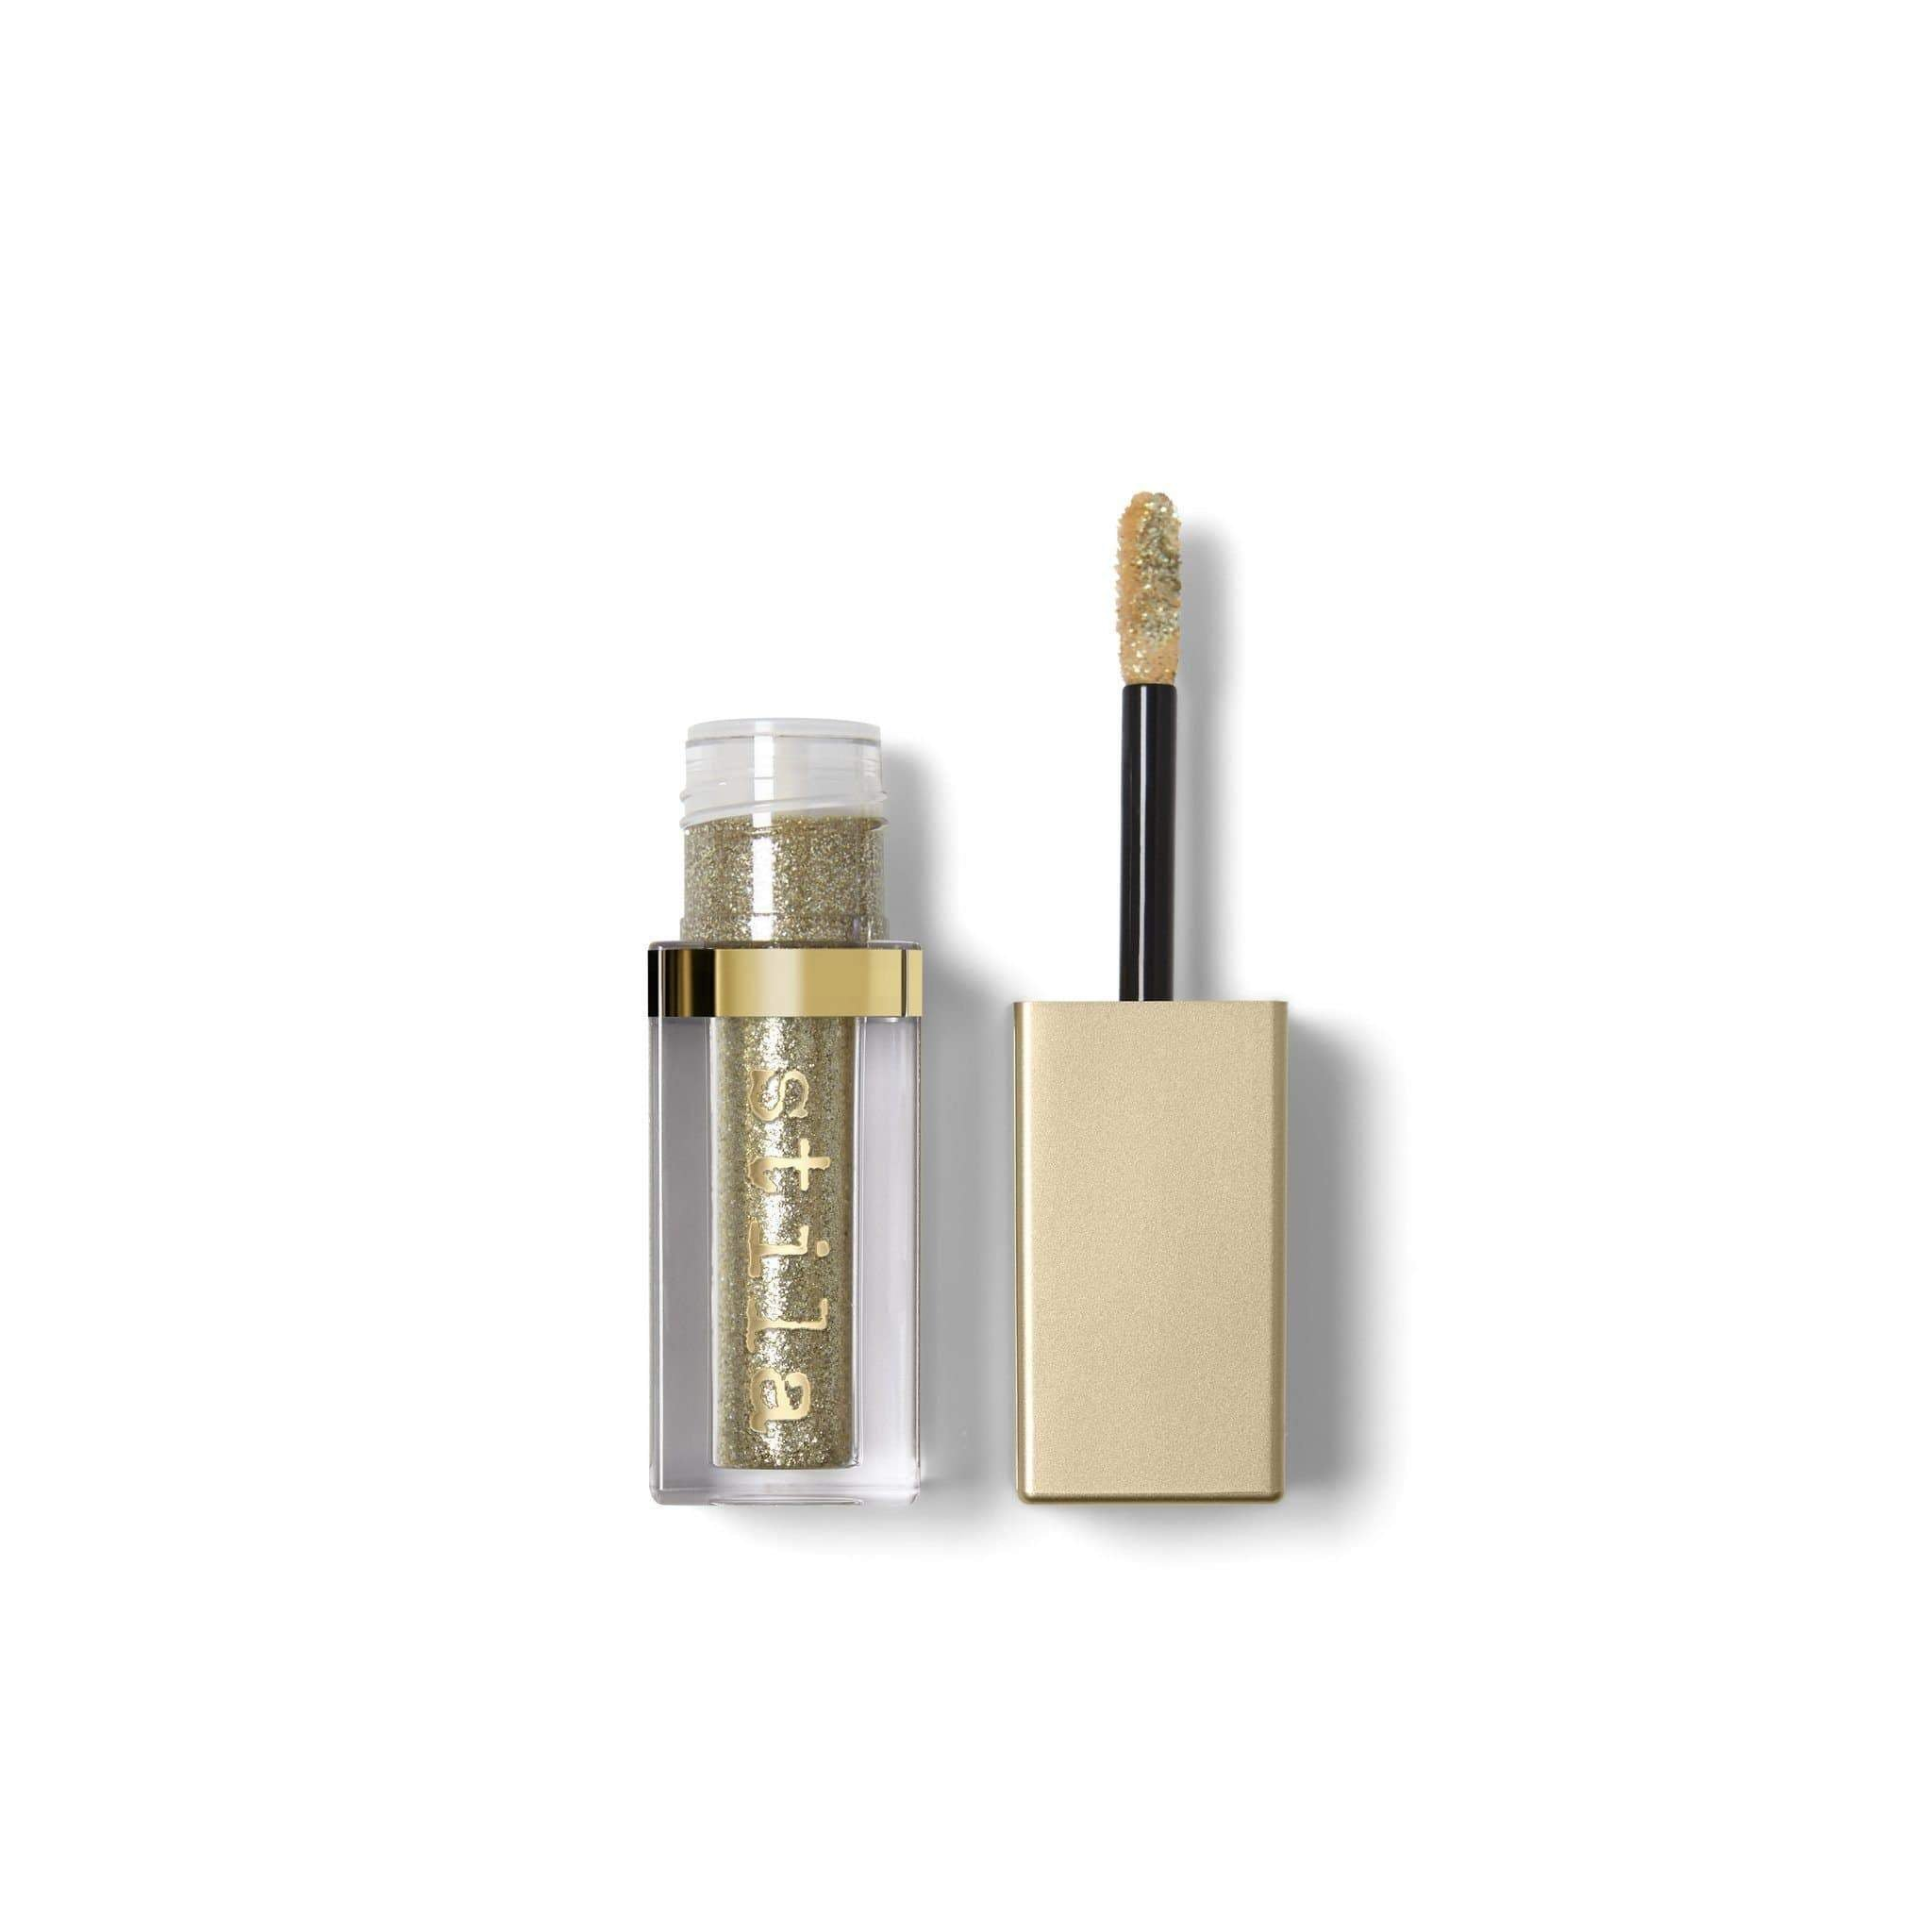 Stila Eyeshadow stila Magnificent Metals Glitter & Glow Liquid Eye Shadow- Gold Goddess